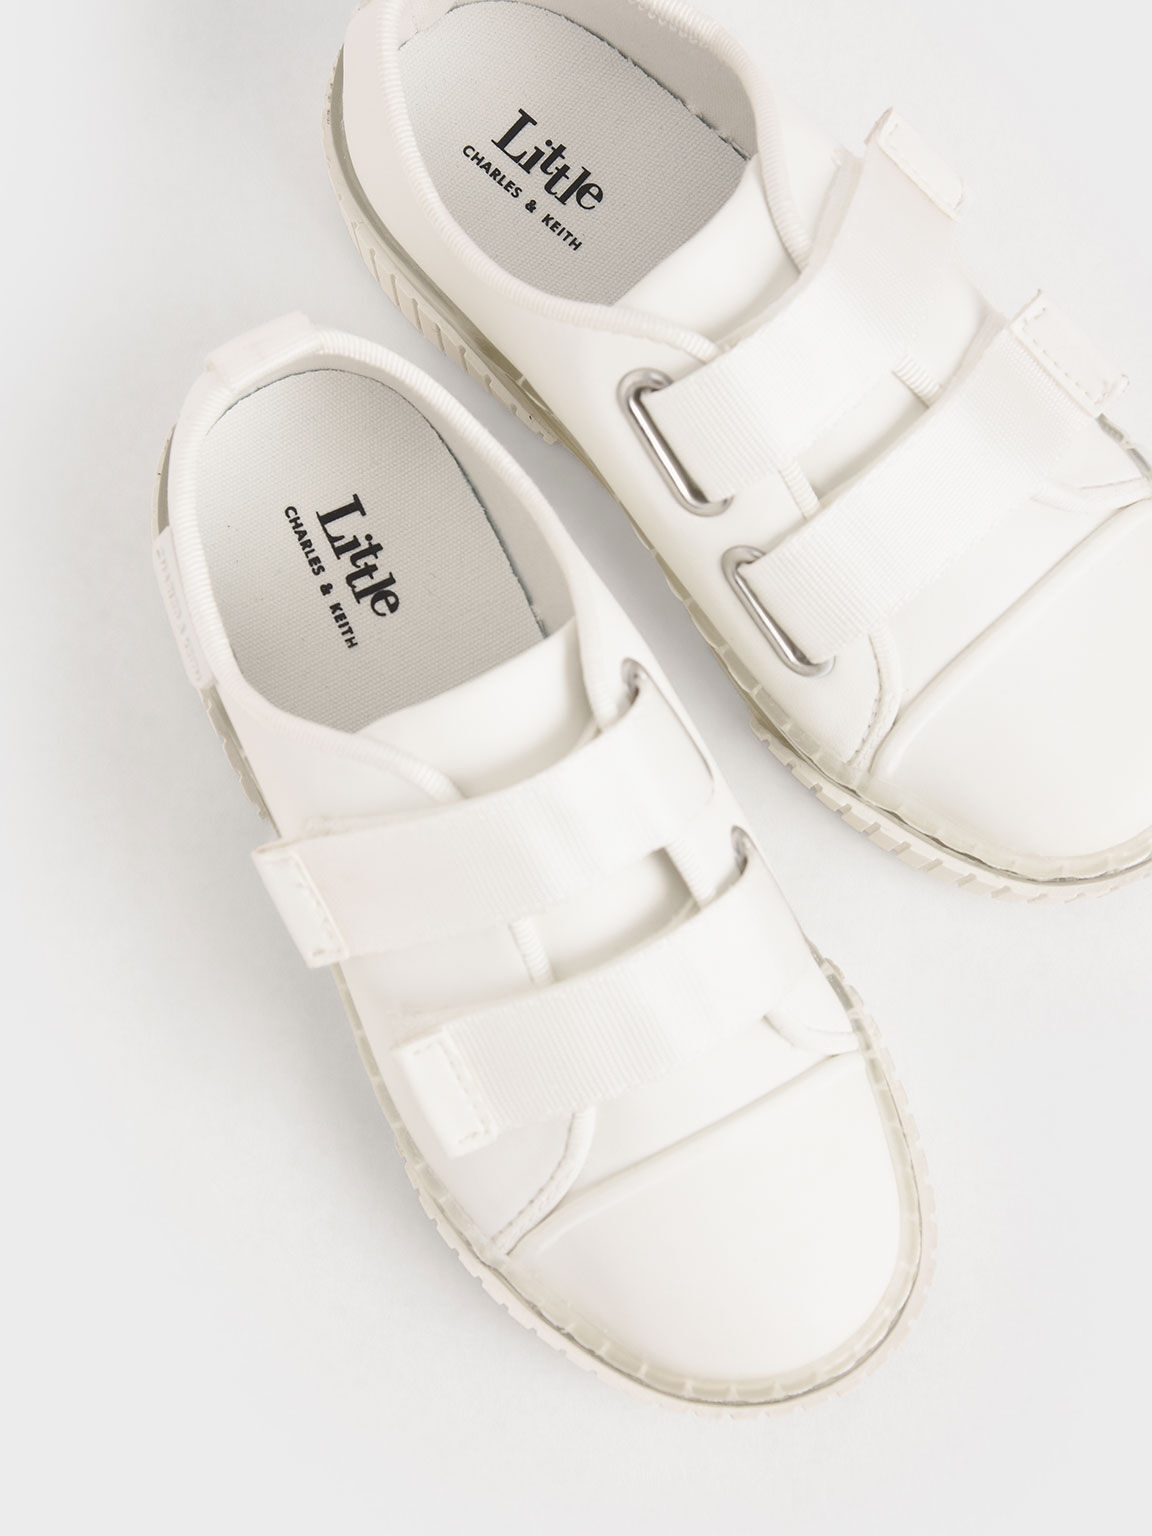 Purpose Collection 2021: Girls' Sneakers, White, hi-res